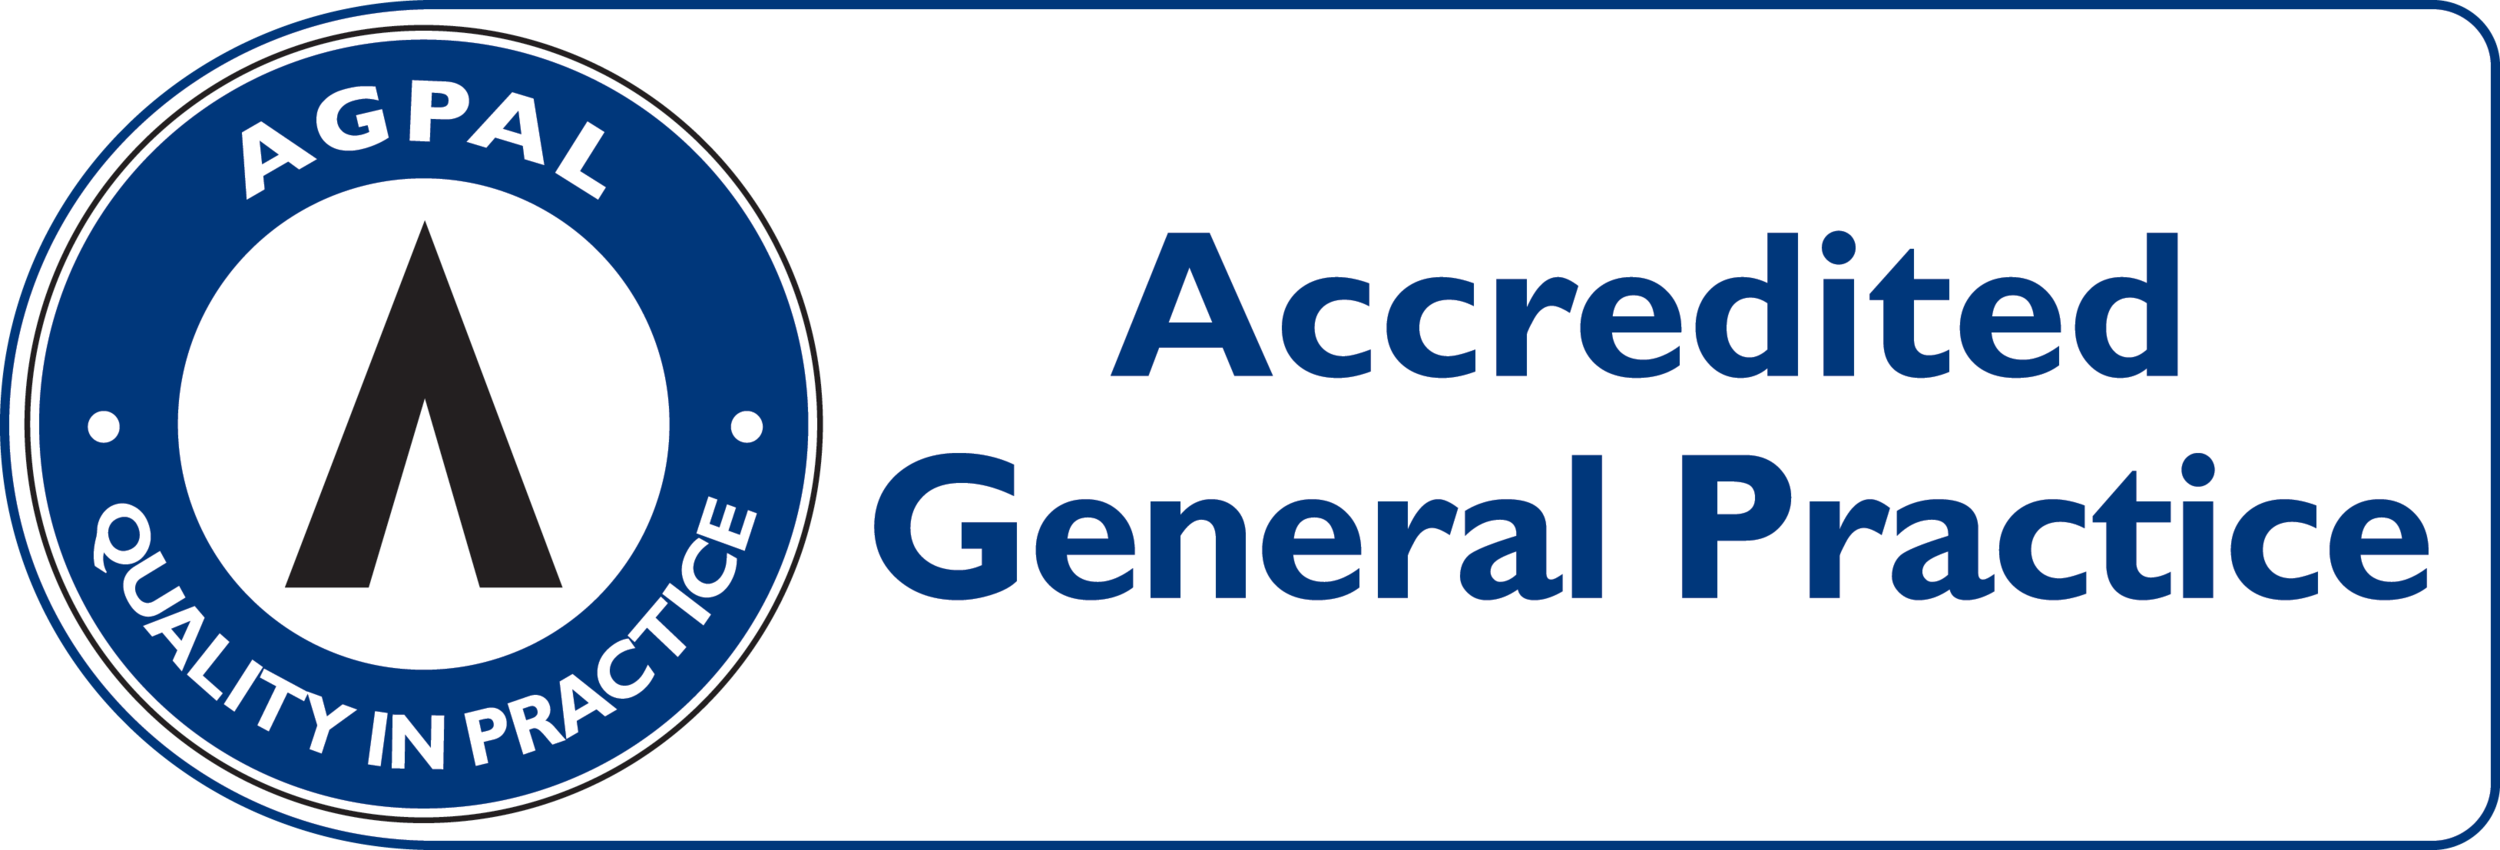 AGPAL_accredited_symbol.png